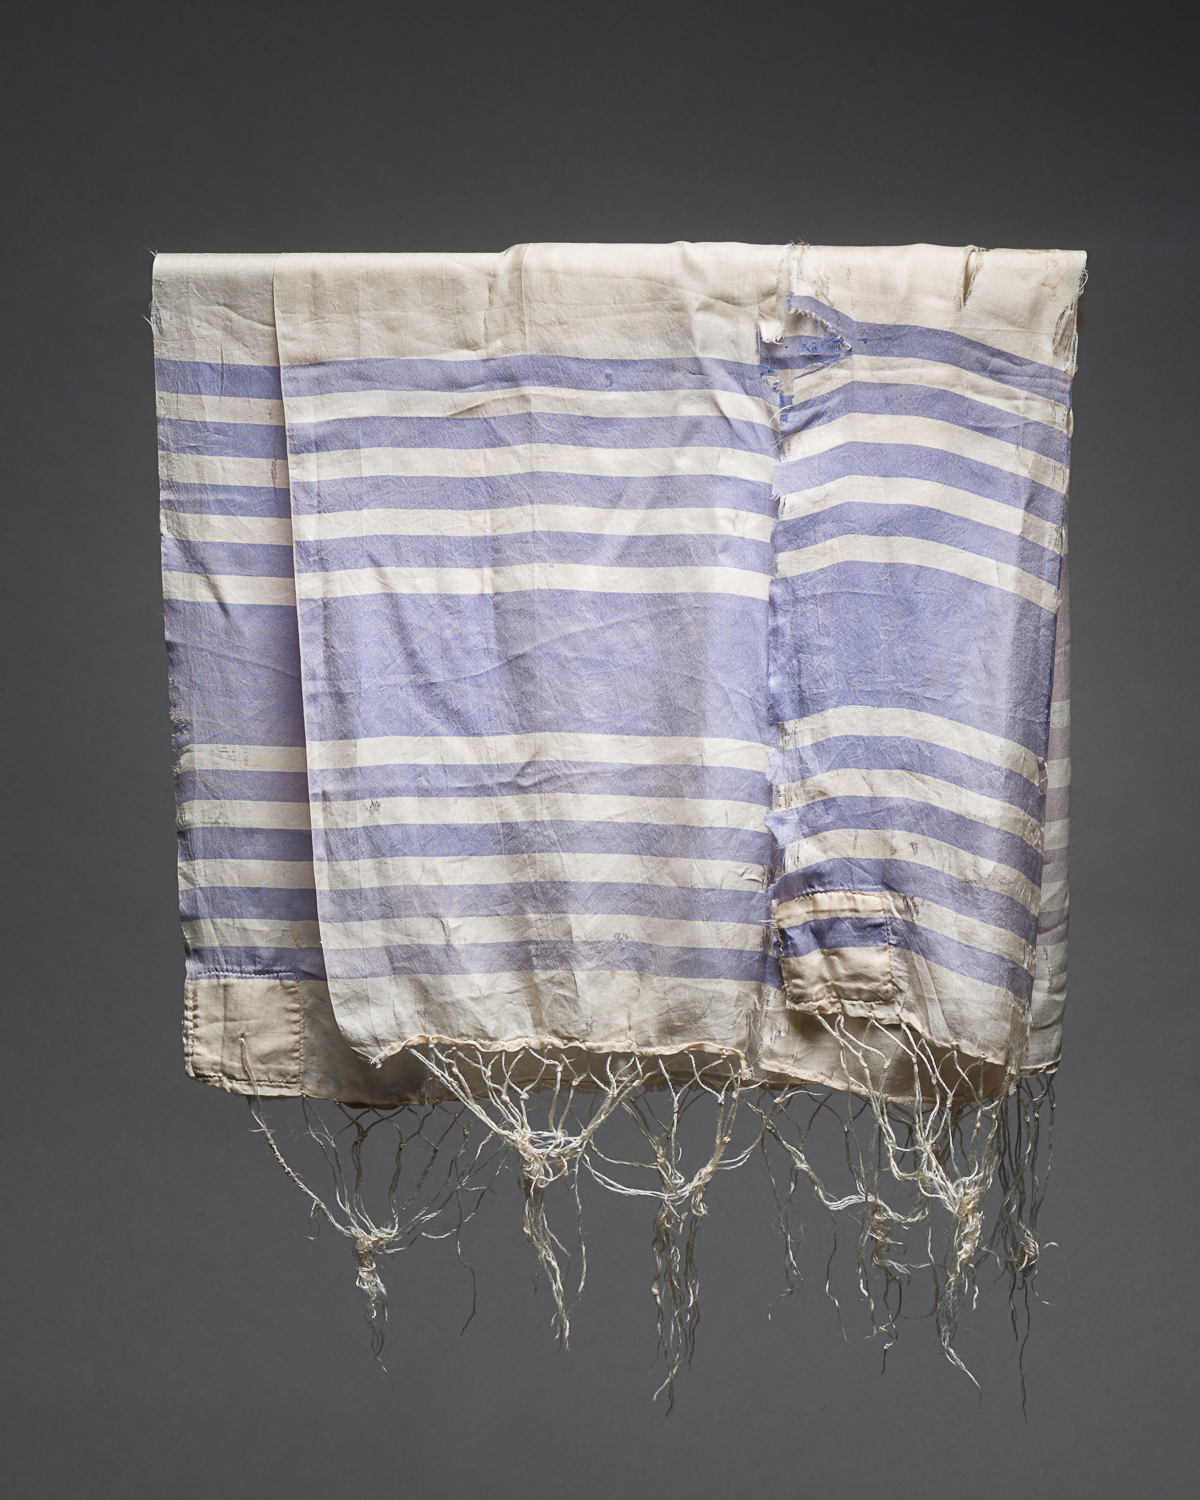 A prayer shawl, or tallit, is worn by Jewish men during prayer recitations. This shawl belonged to Harry Cohen who lived in Montreal before the war. (Photo: Peter Berra)